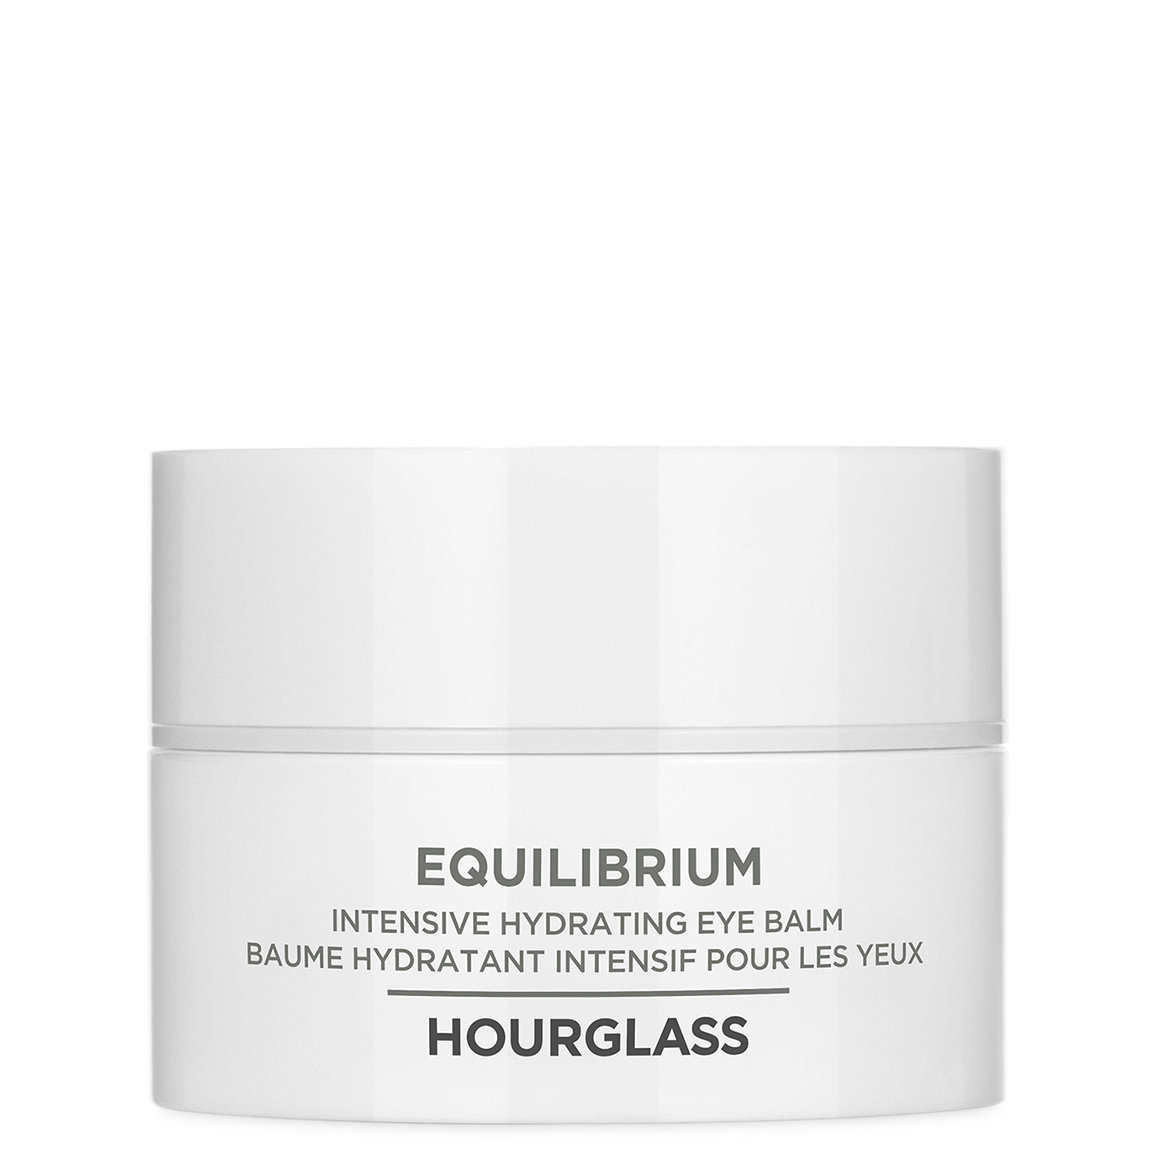 Hourglass Equilibrium Intensive Hydrating Eye Balm alternative view 1 - product swatch.